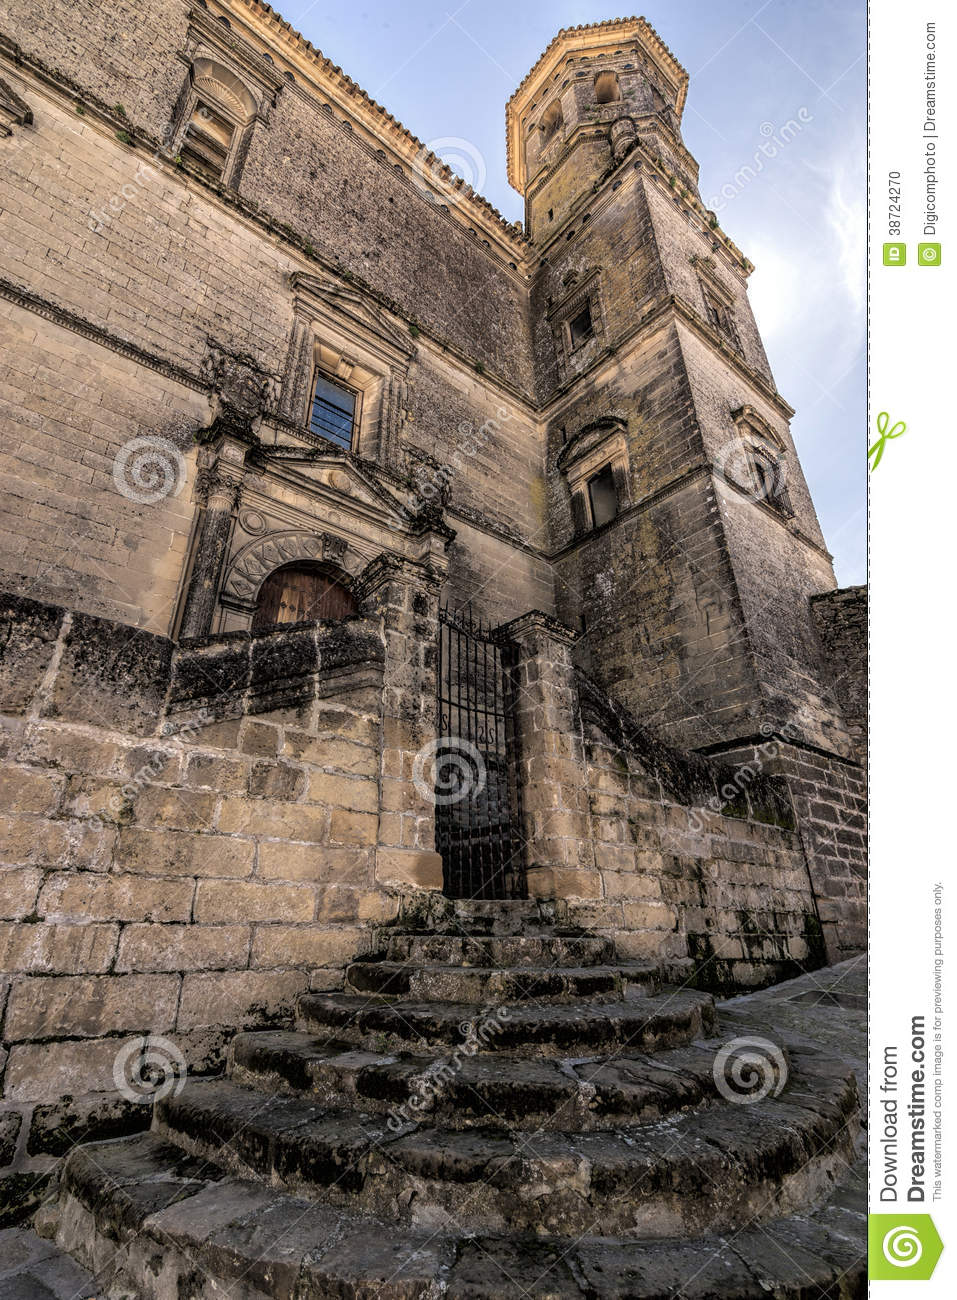 Baeza Spain  City new picture : Street Arco De Las Escuelas, Baeza, Spain Editorial Image Image ...